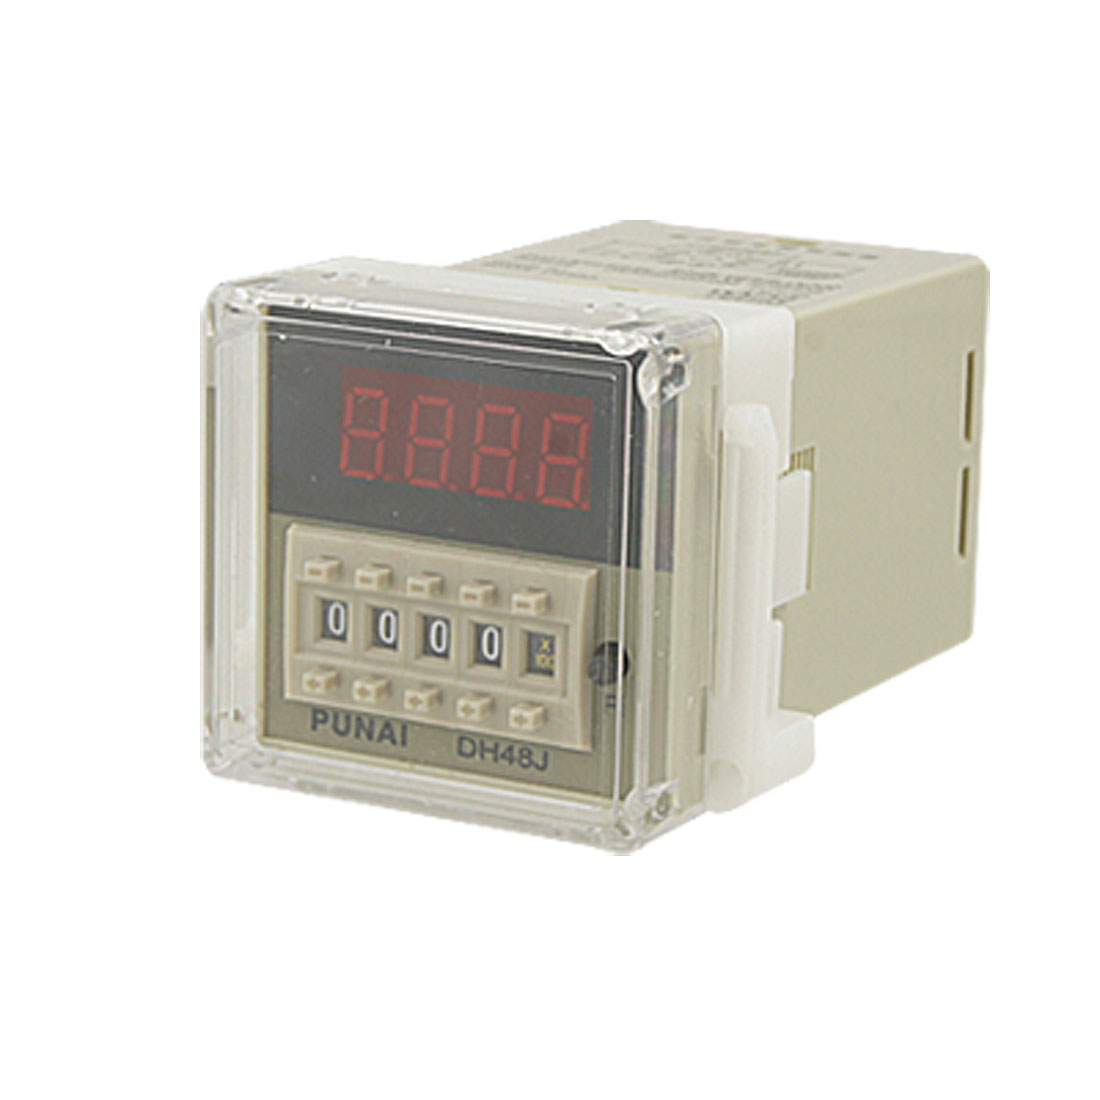 DH48J 220V AC 30 CPS Digital Counter Relay 1-9999 (x1,x10,x100) 8 Pin